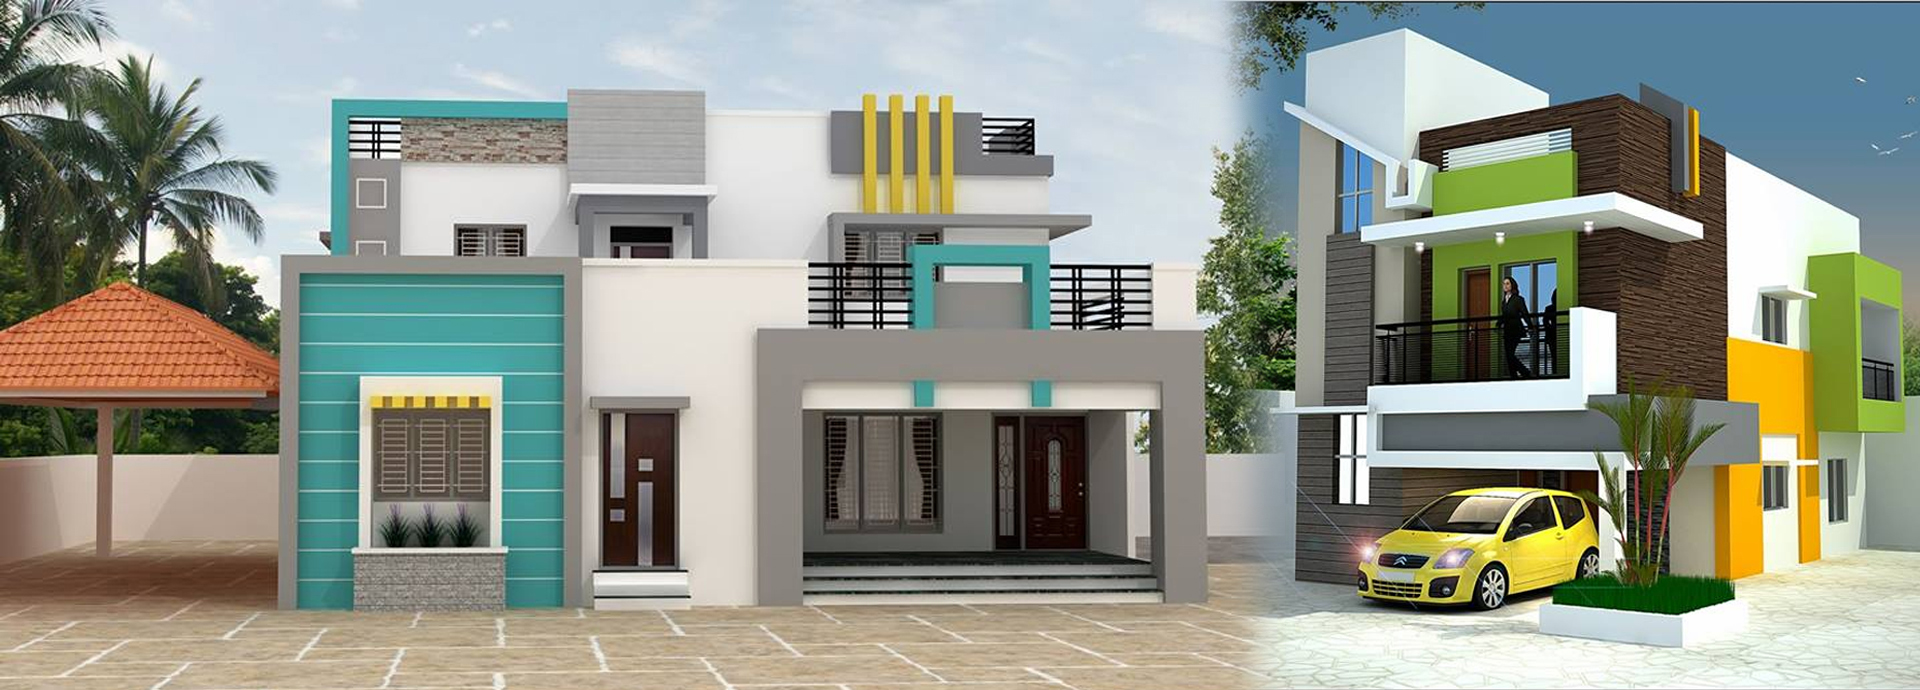 Flats for sale in Chennai Residential Builders in Chennai